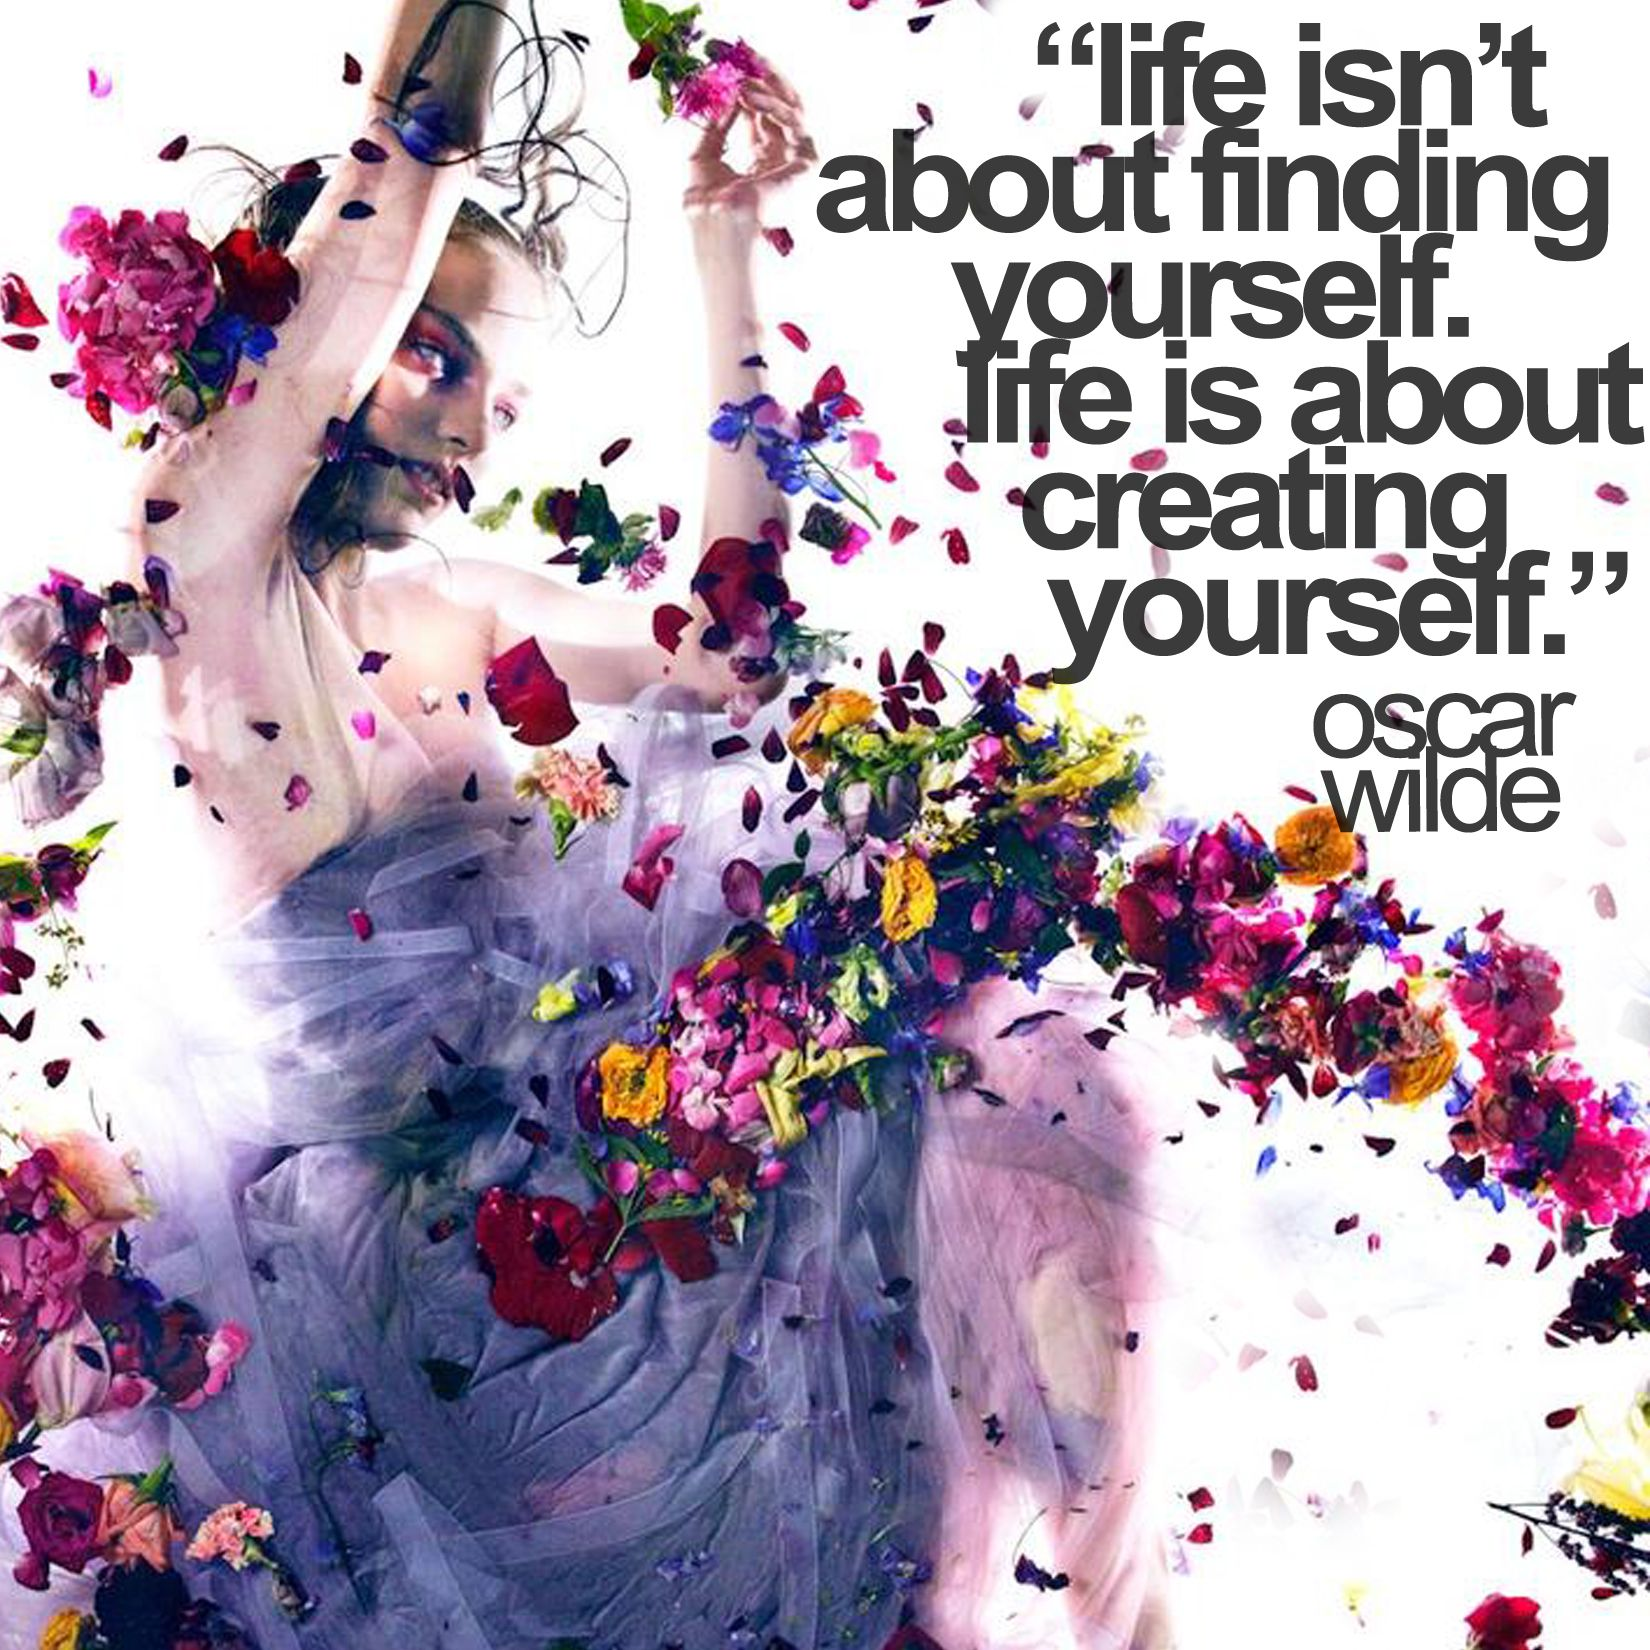 """Life isn't about finding yourself. Life is about creating yourself."" -Oscar Wilde"